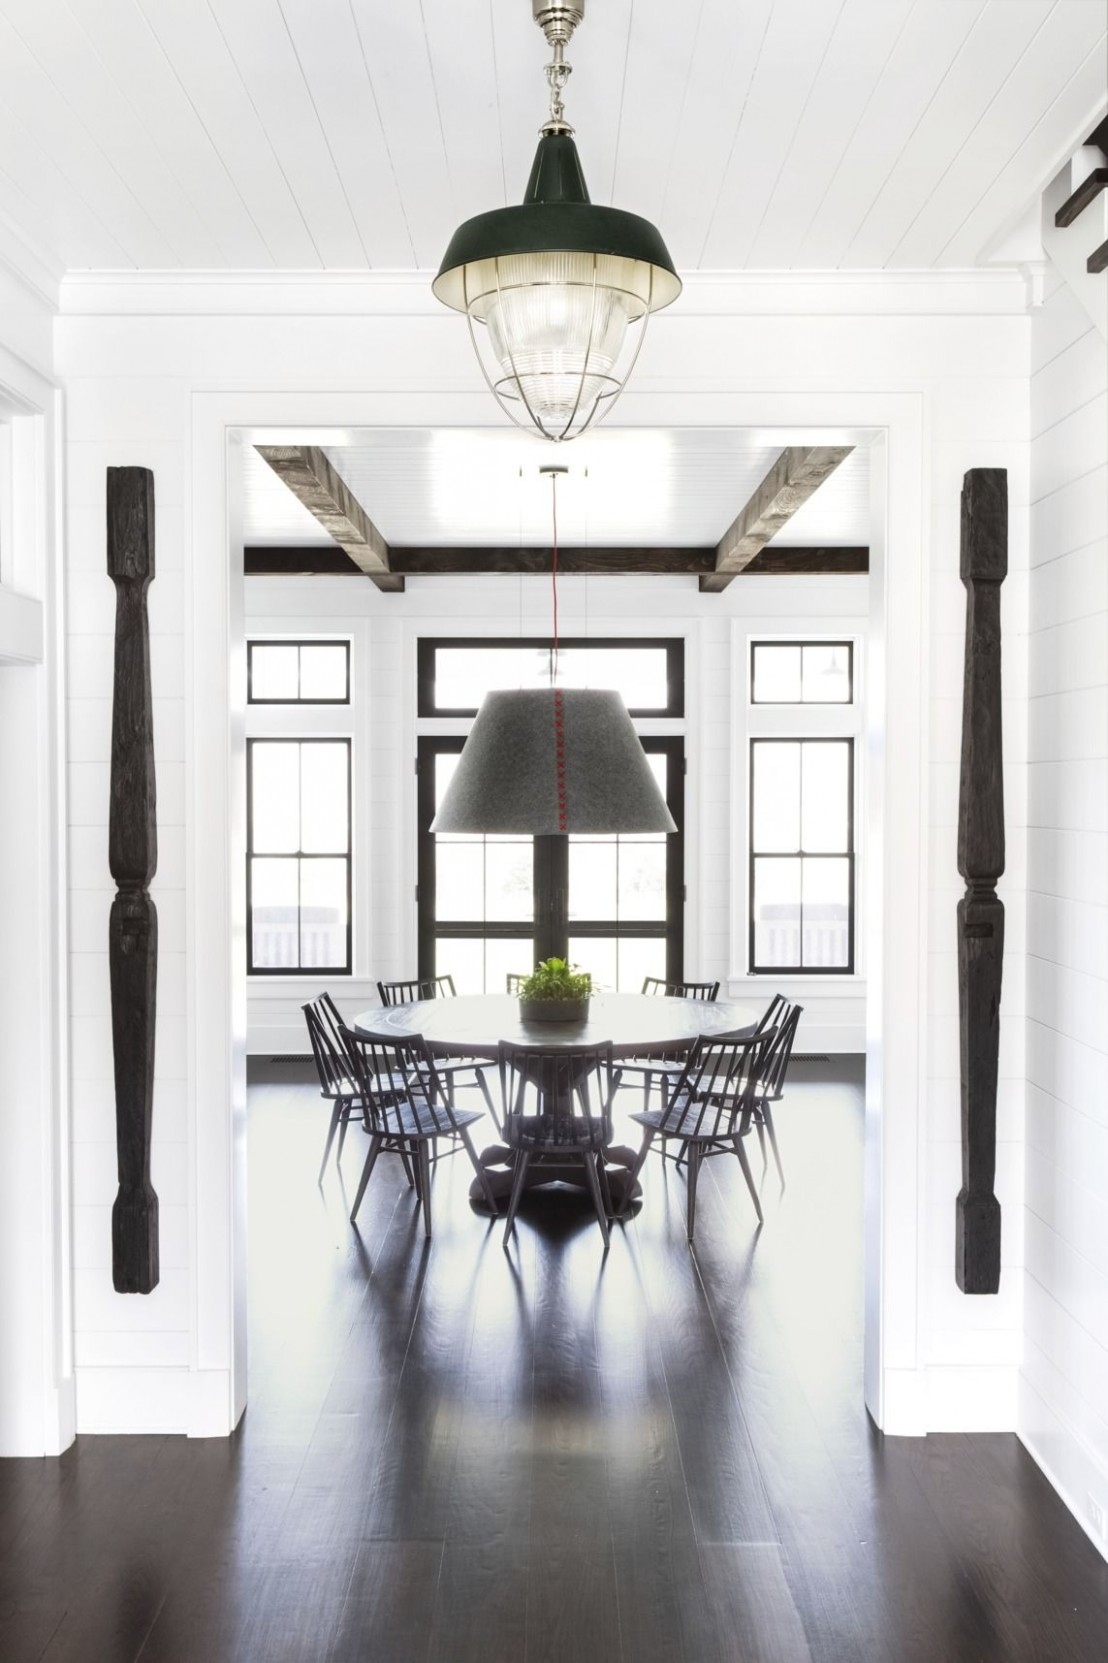 12 Best Dining Room Decorating Ideas - Country Dining Room Decor - Dining Room Decor Ideas Modern